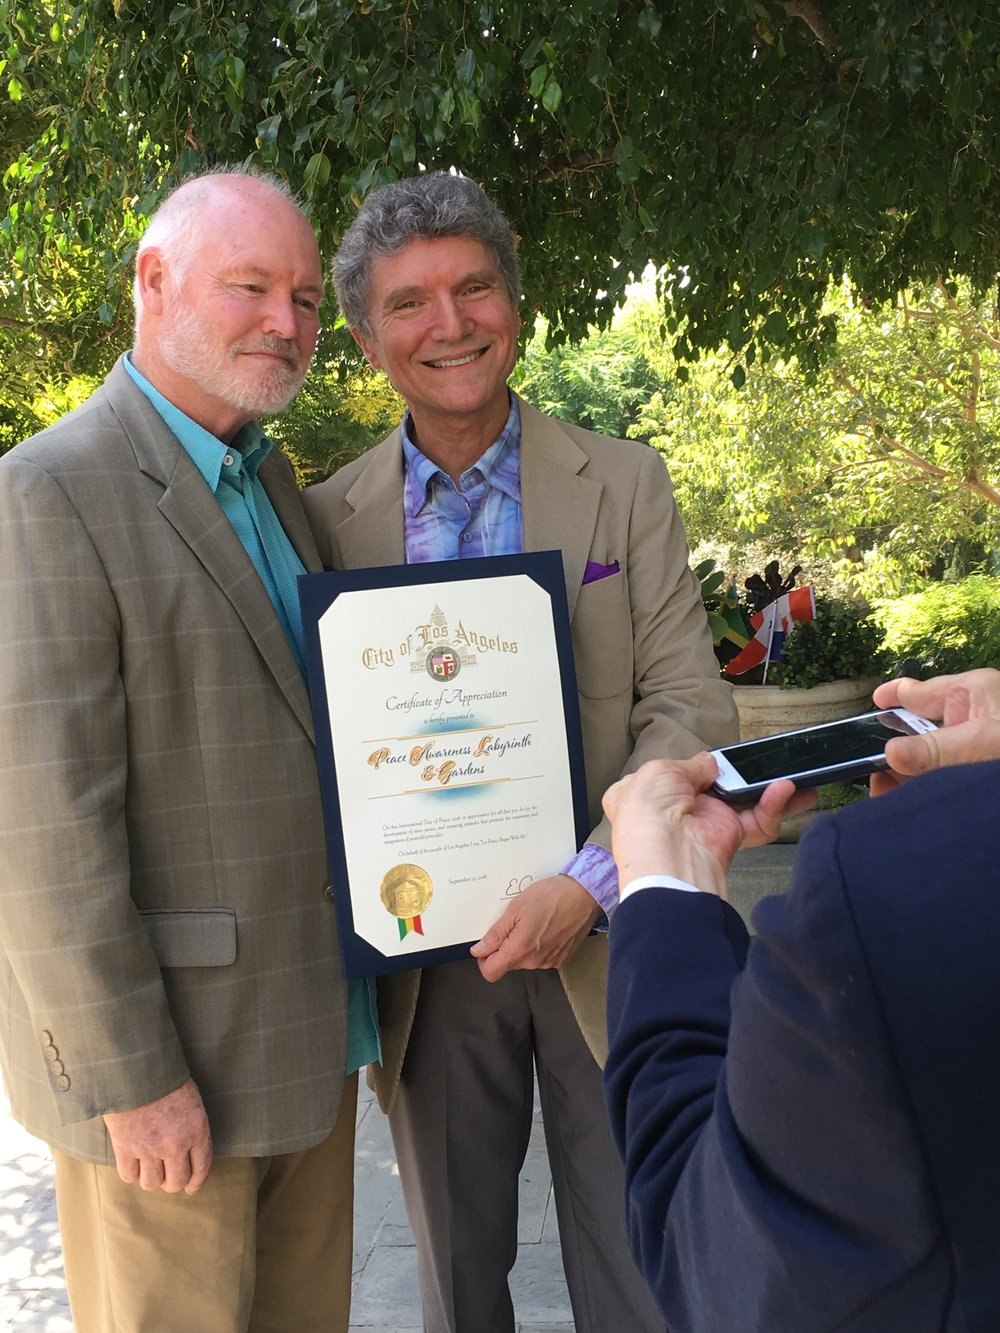 Daniel Tamm, Representative of Mayor Eric Garcetti presents Peace Award to Dr. Paul Kaye, President of PAL&G.